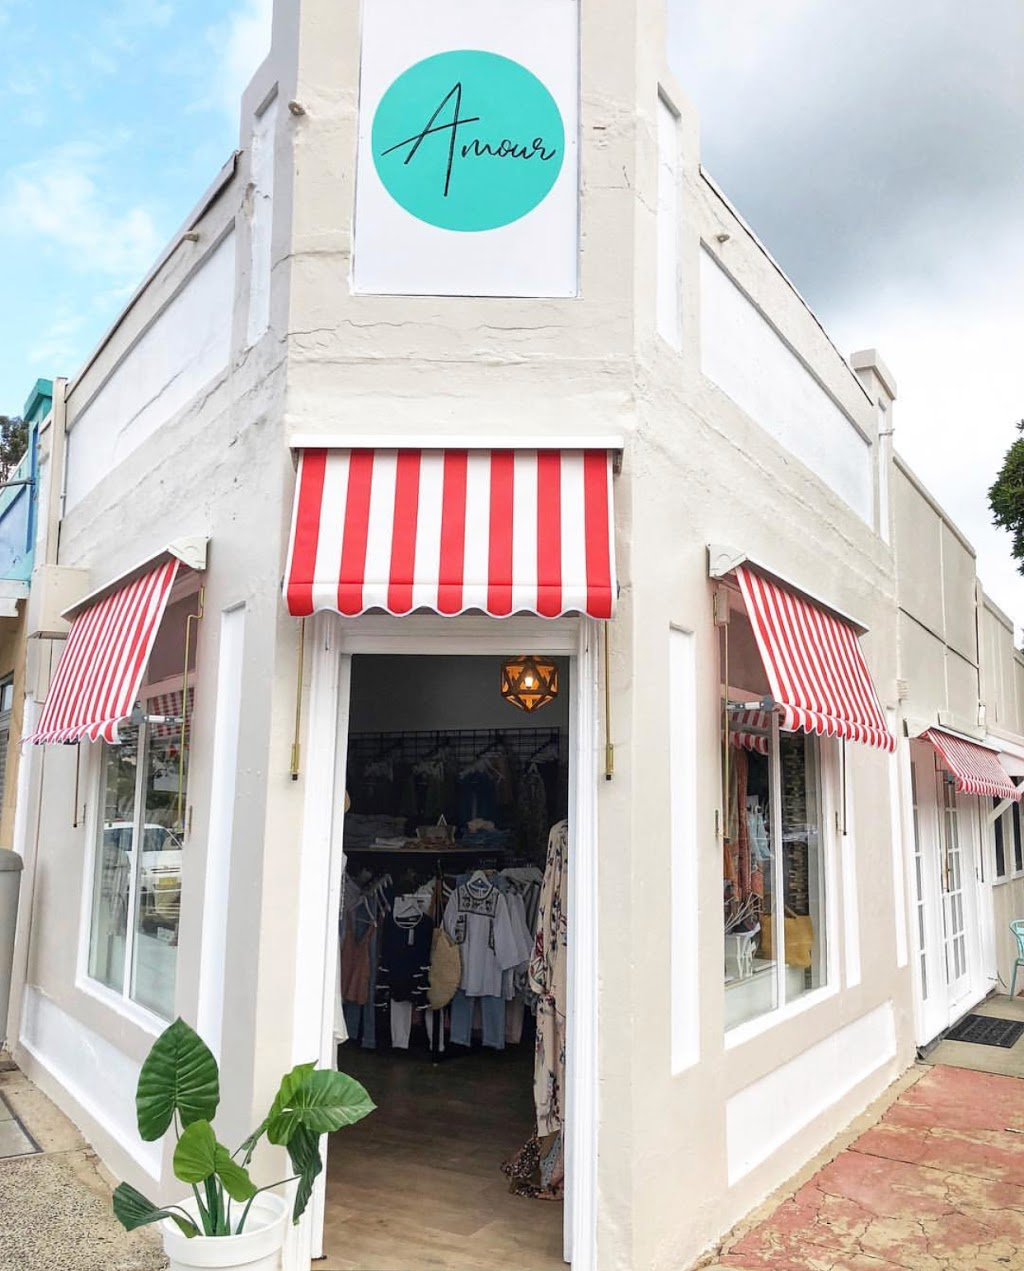 Amour | clothing store | 410 Booker Bay Rd, Booker Bay NSW 2257, Australia | 0497232614 OR +61 497 232 614